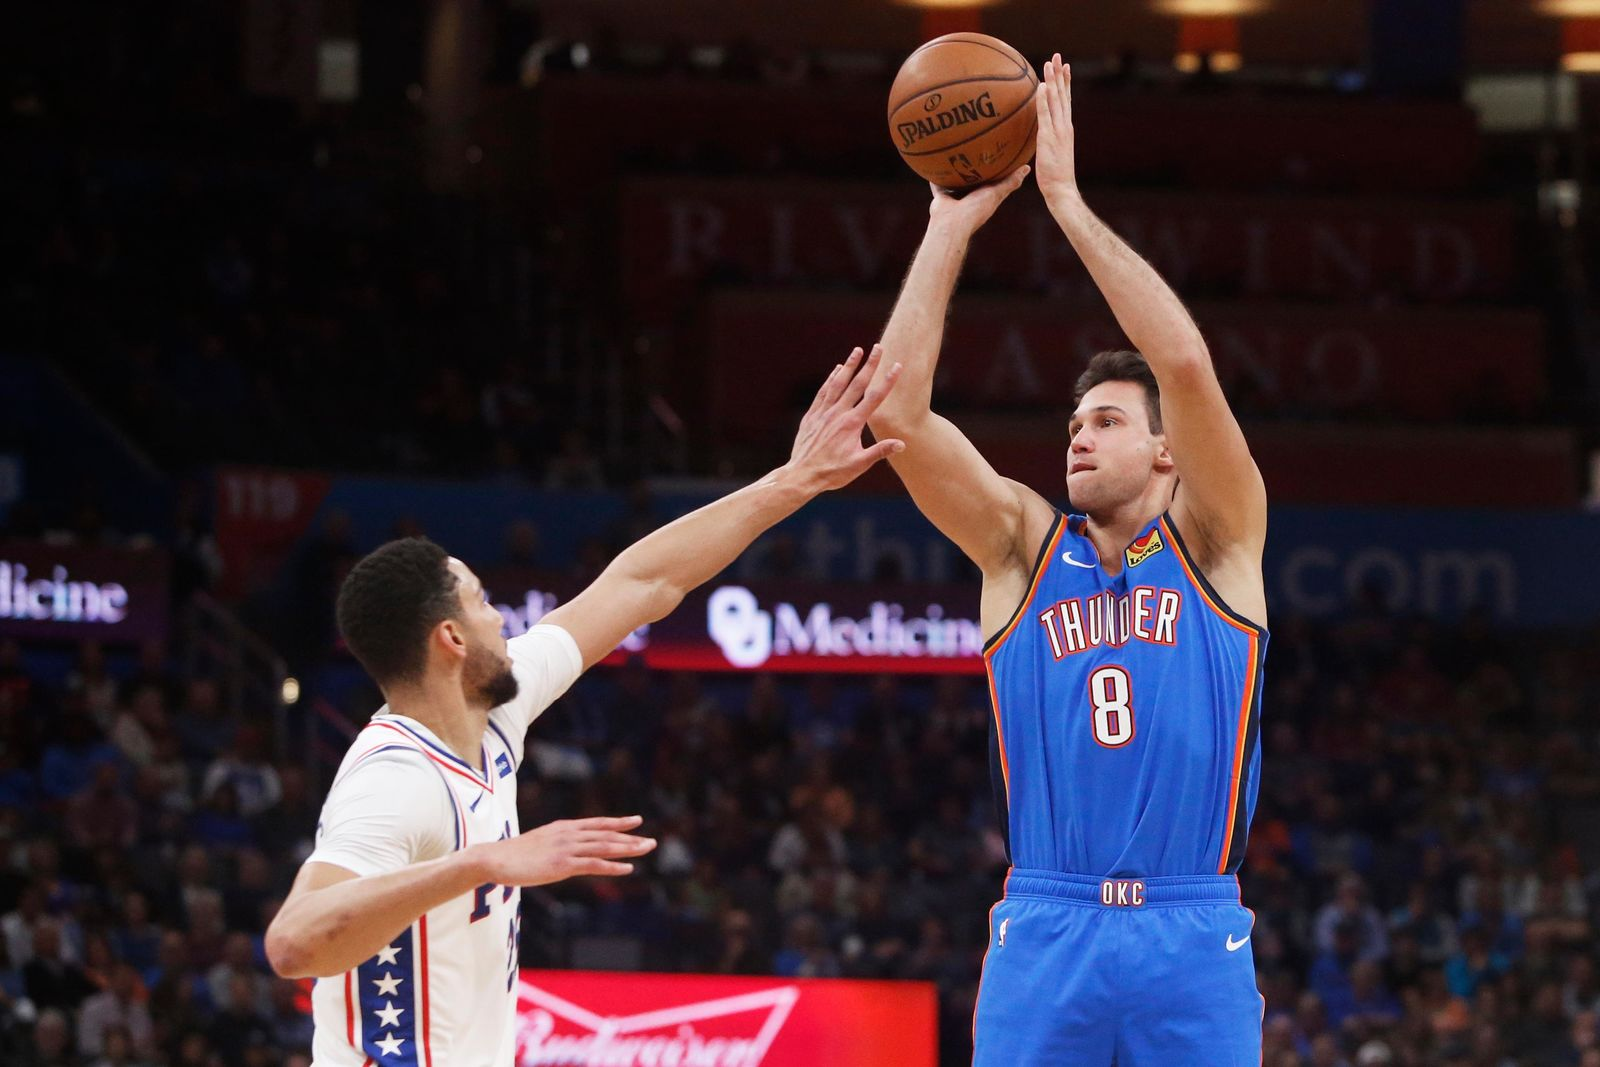 Oklahoma City Thunder forward Danilo Gallinari (8) shoots over Philadelphia 76ers guard Ben Simmons, left, during the first half of an NBA basketball game Friday, Nov. 15, 2019, in Oklahoma City. (AP Photo/Sue Ogrocki)